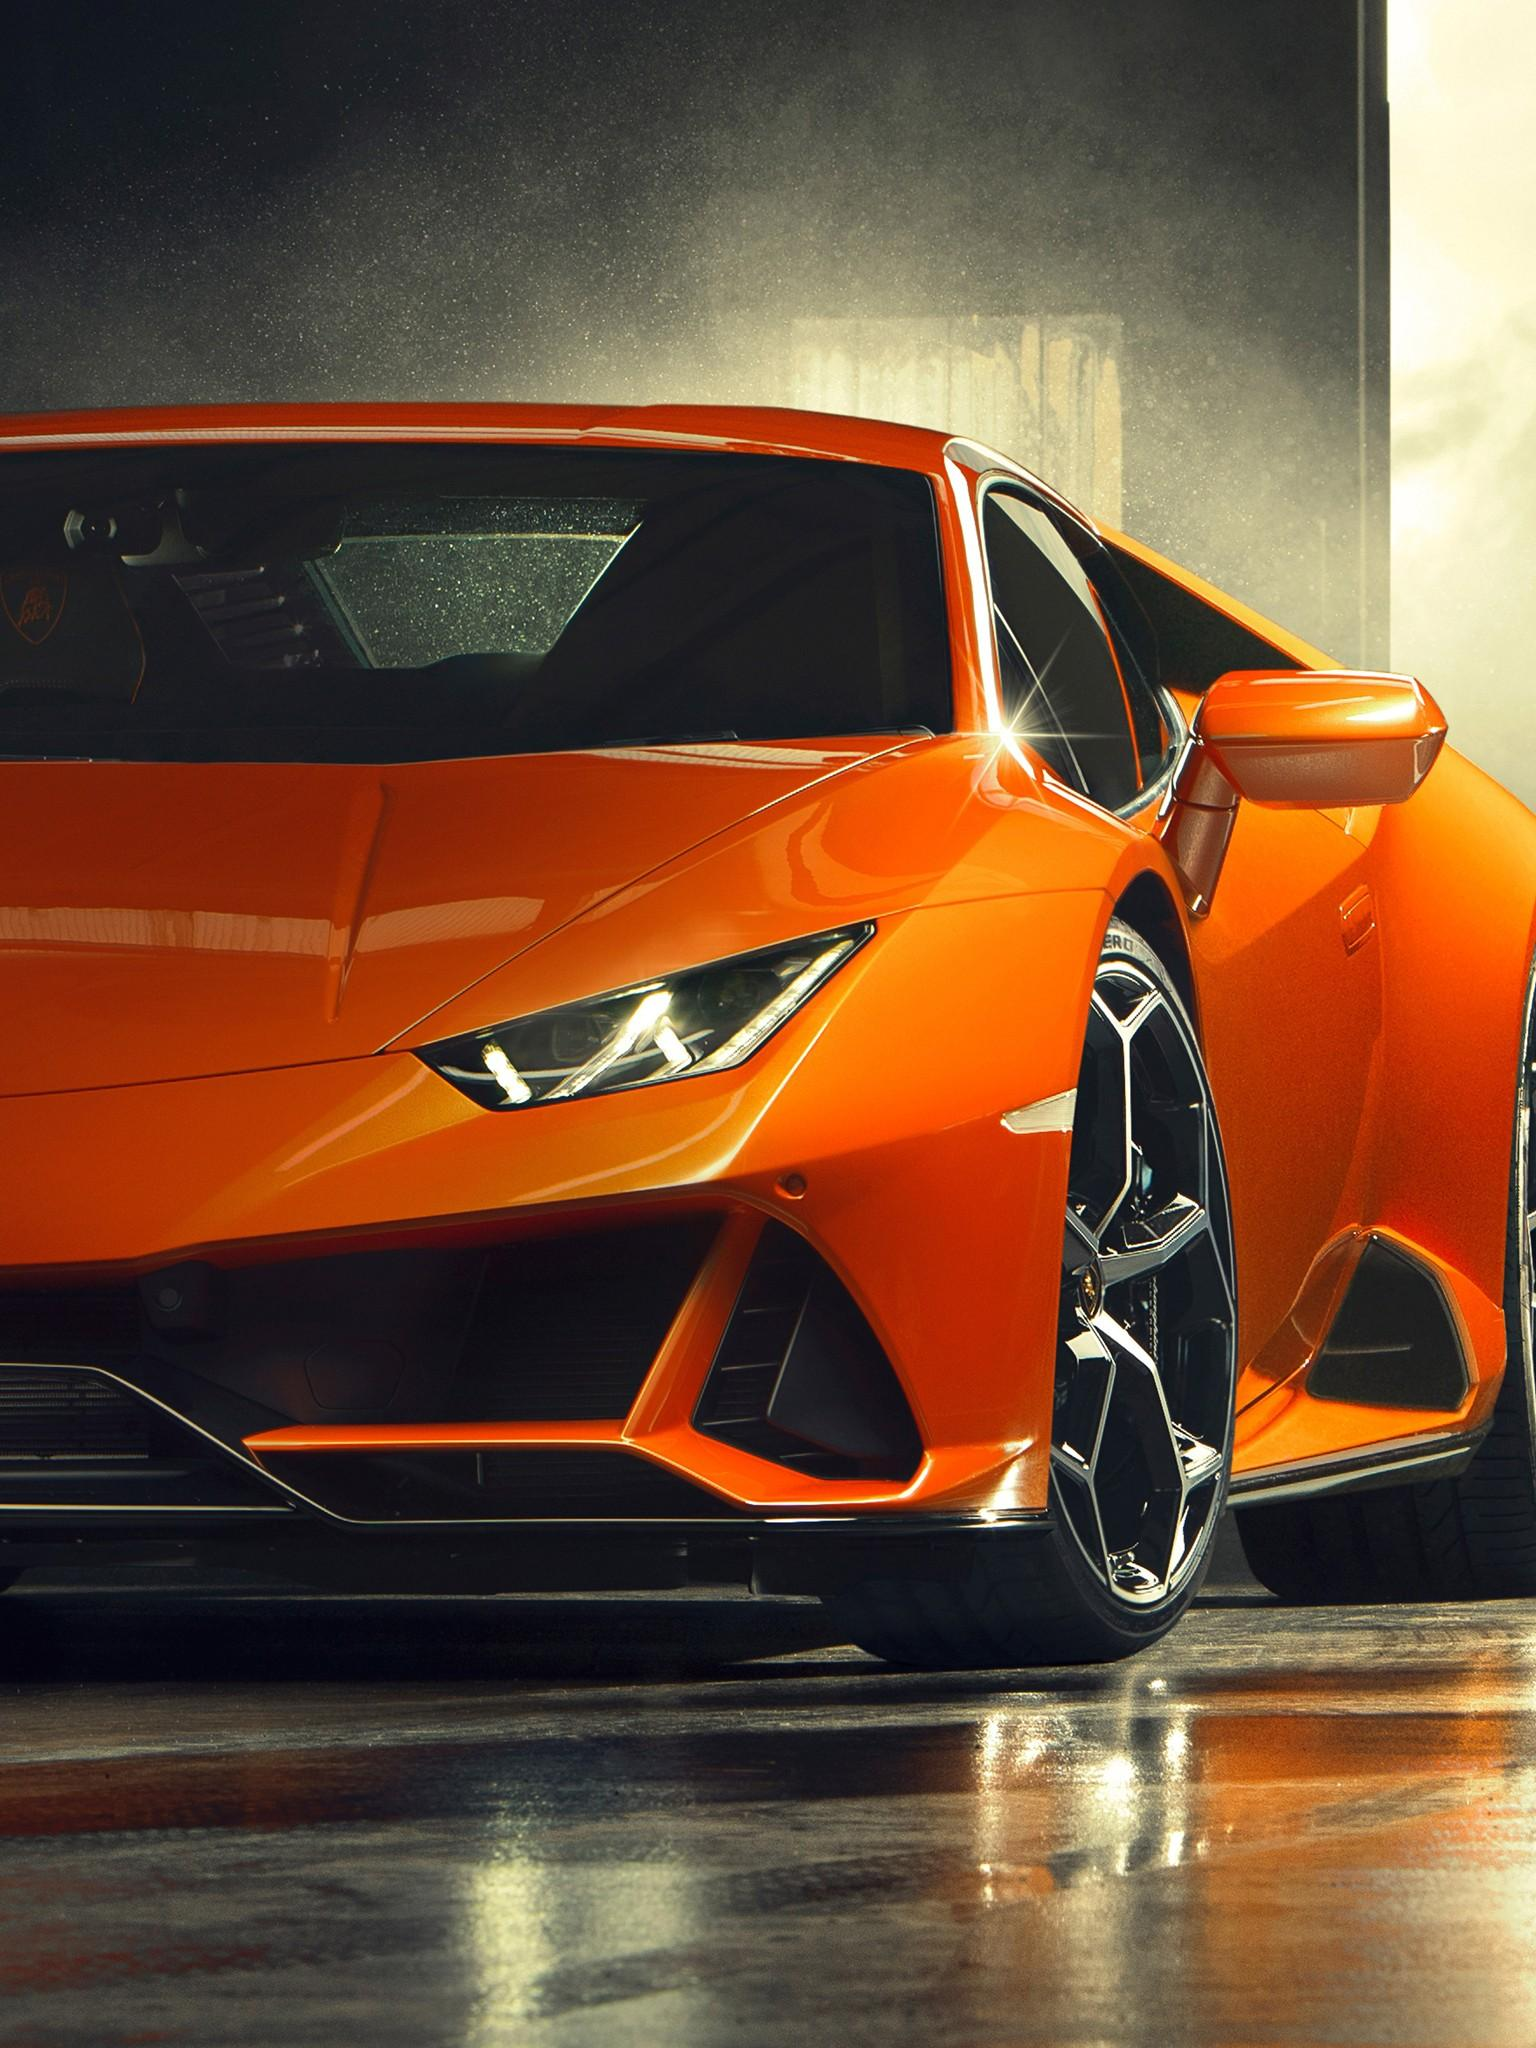 Lamborghini Huracan Evo 2019 4k 6 Wallpapers